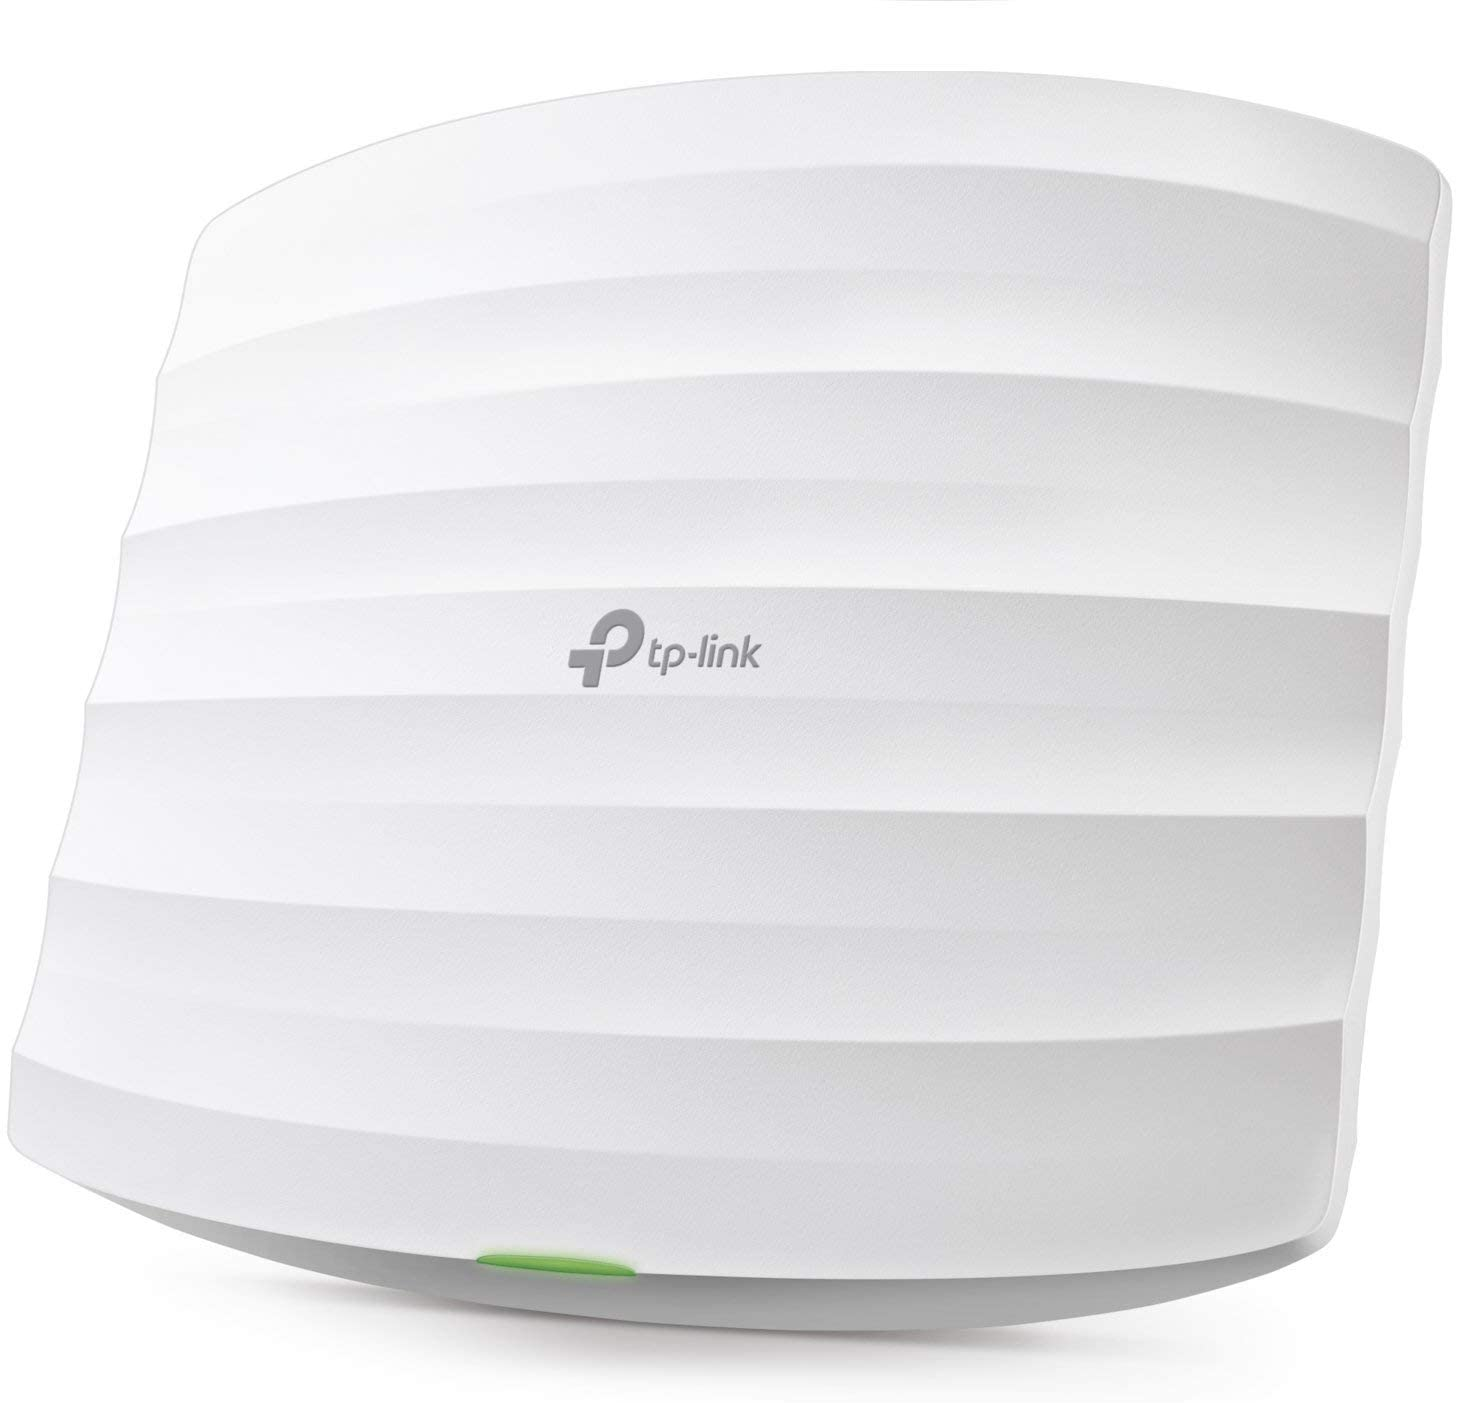 TP-Link Omada AC1750 Wireless Access Point – (Eap245) refurbished